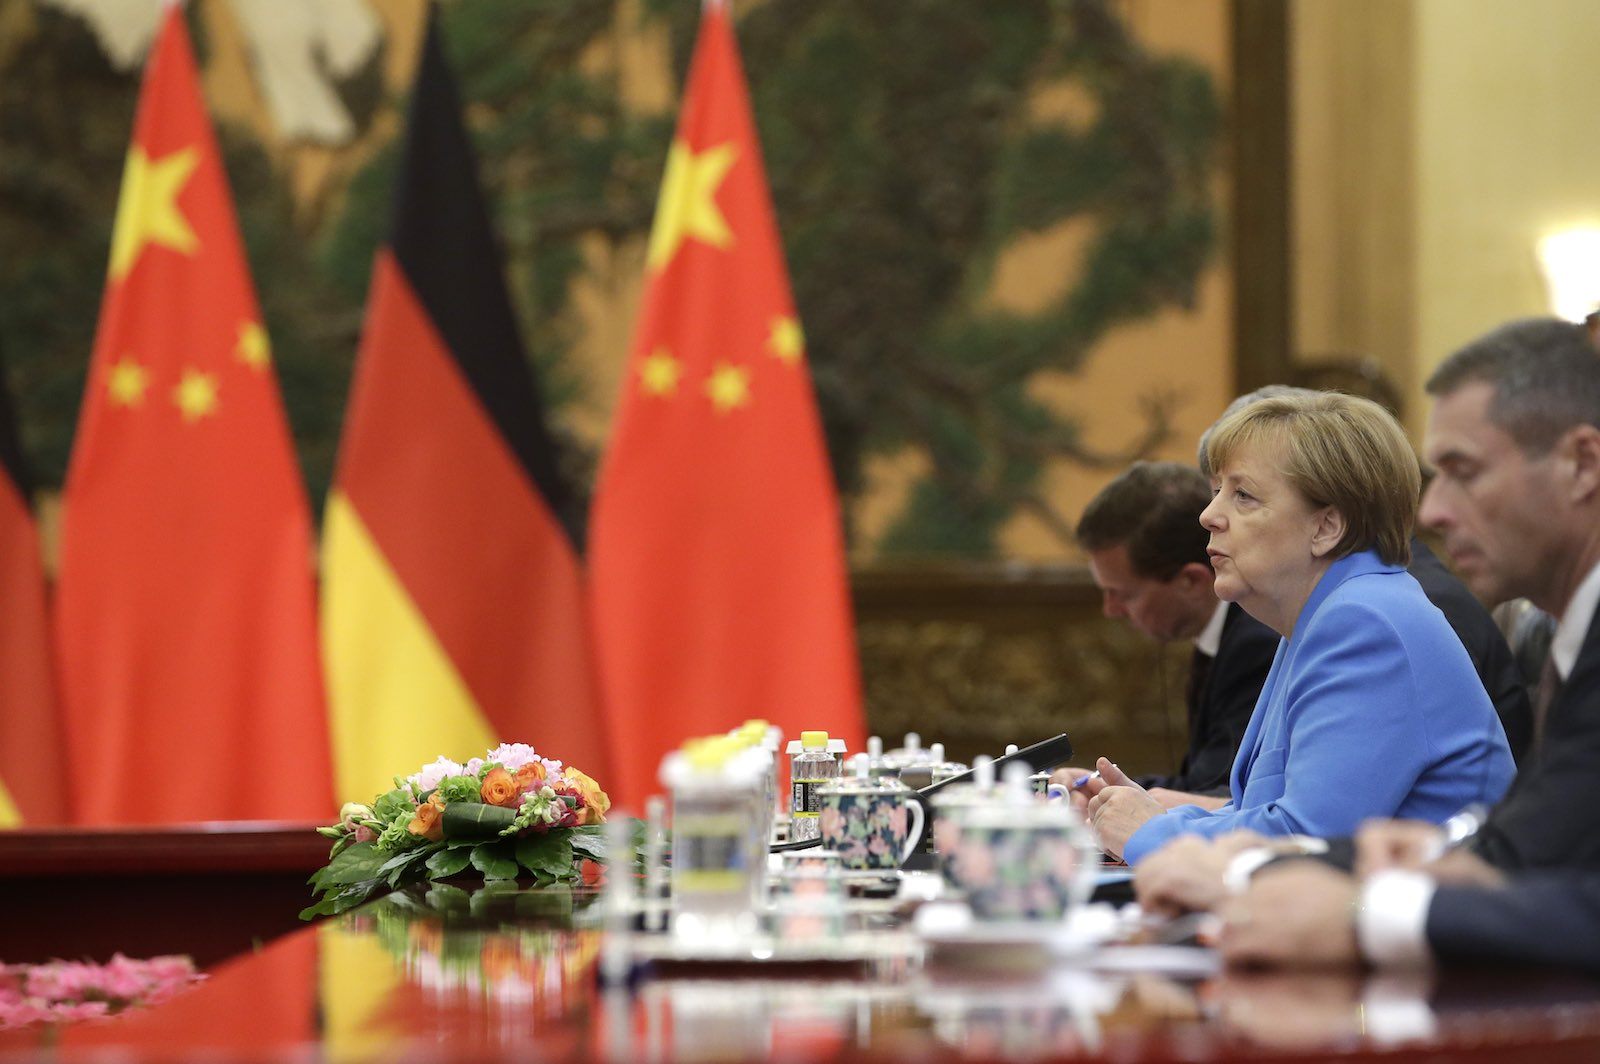 German Chancellor Angela Merkel at the Great Hall of the People in Beijing, China (Photo: Jason Lee via Getty)